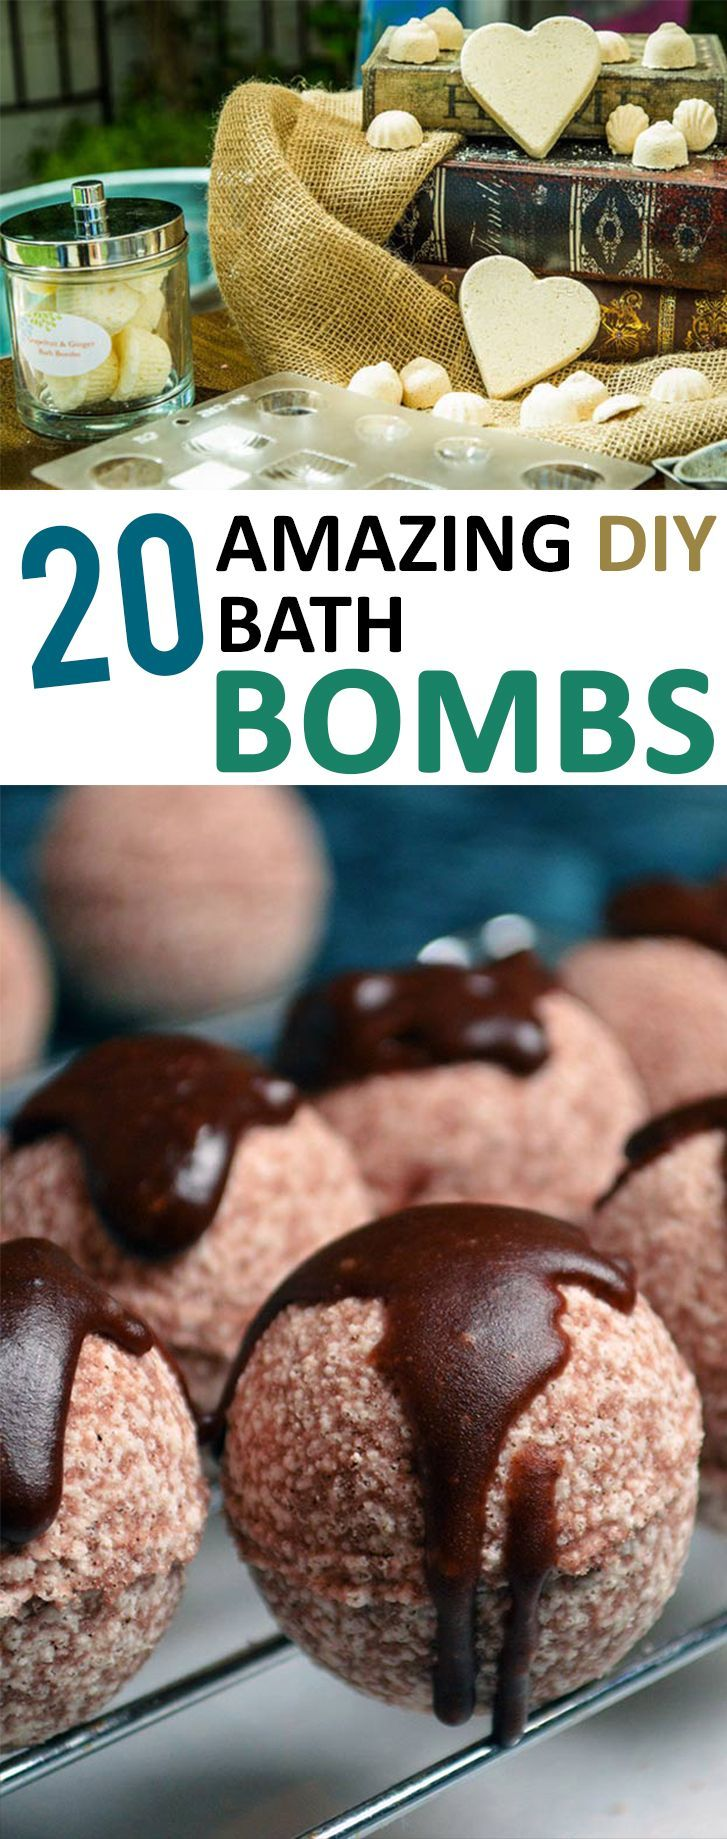 DIY projects, DIY bath bombs, DIY projects, natural beauty, homemade beauty products, bath products, health and beauty, popular pin.